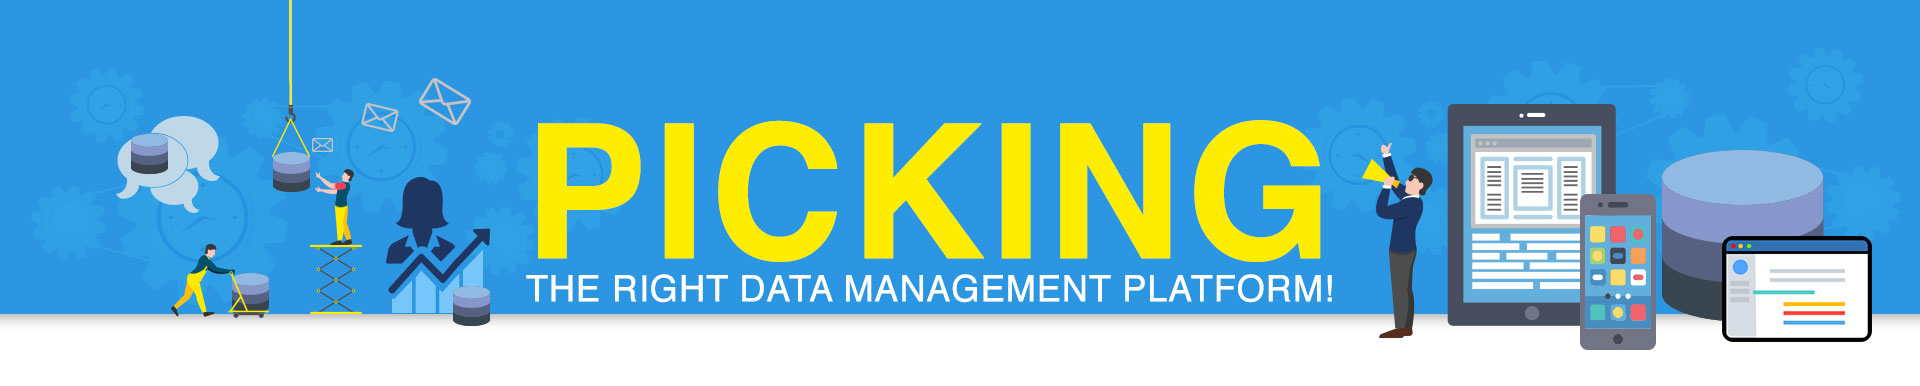 Picking-the-Right-Data-Management-Platform